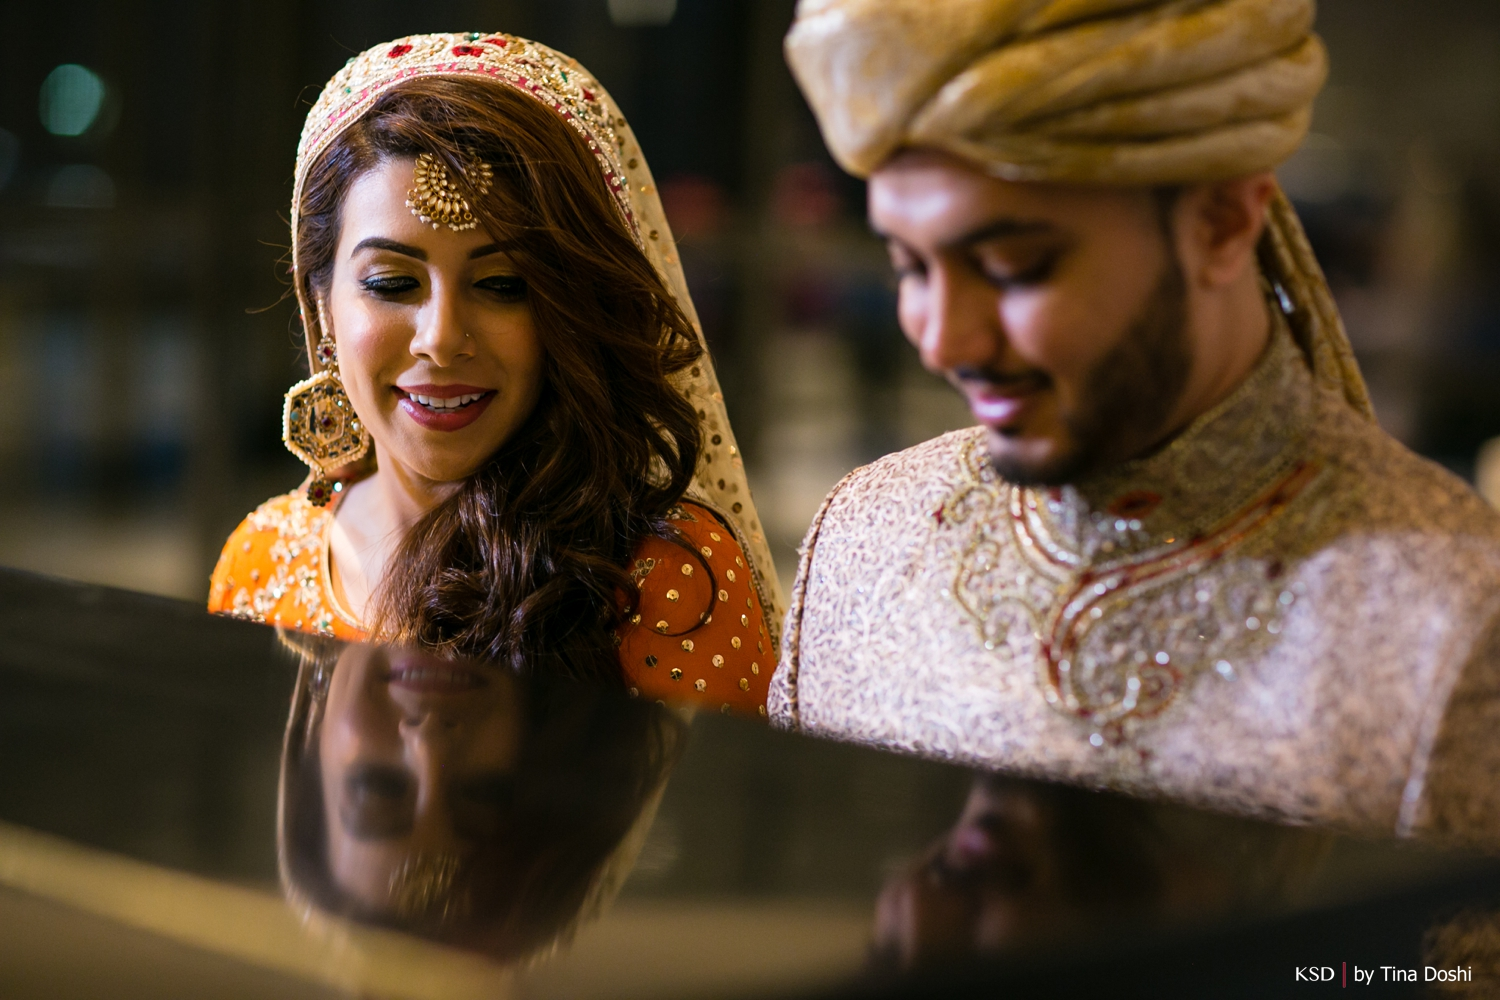 nj_south_asian_wedding_0028